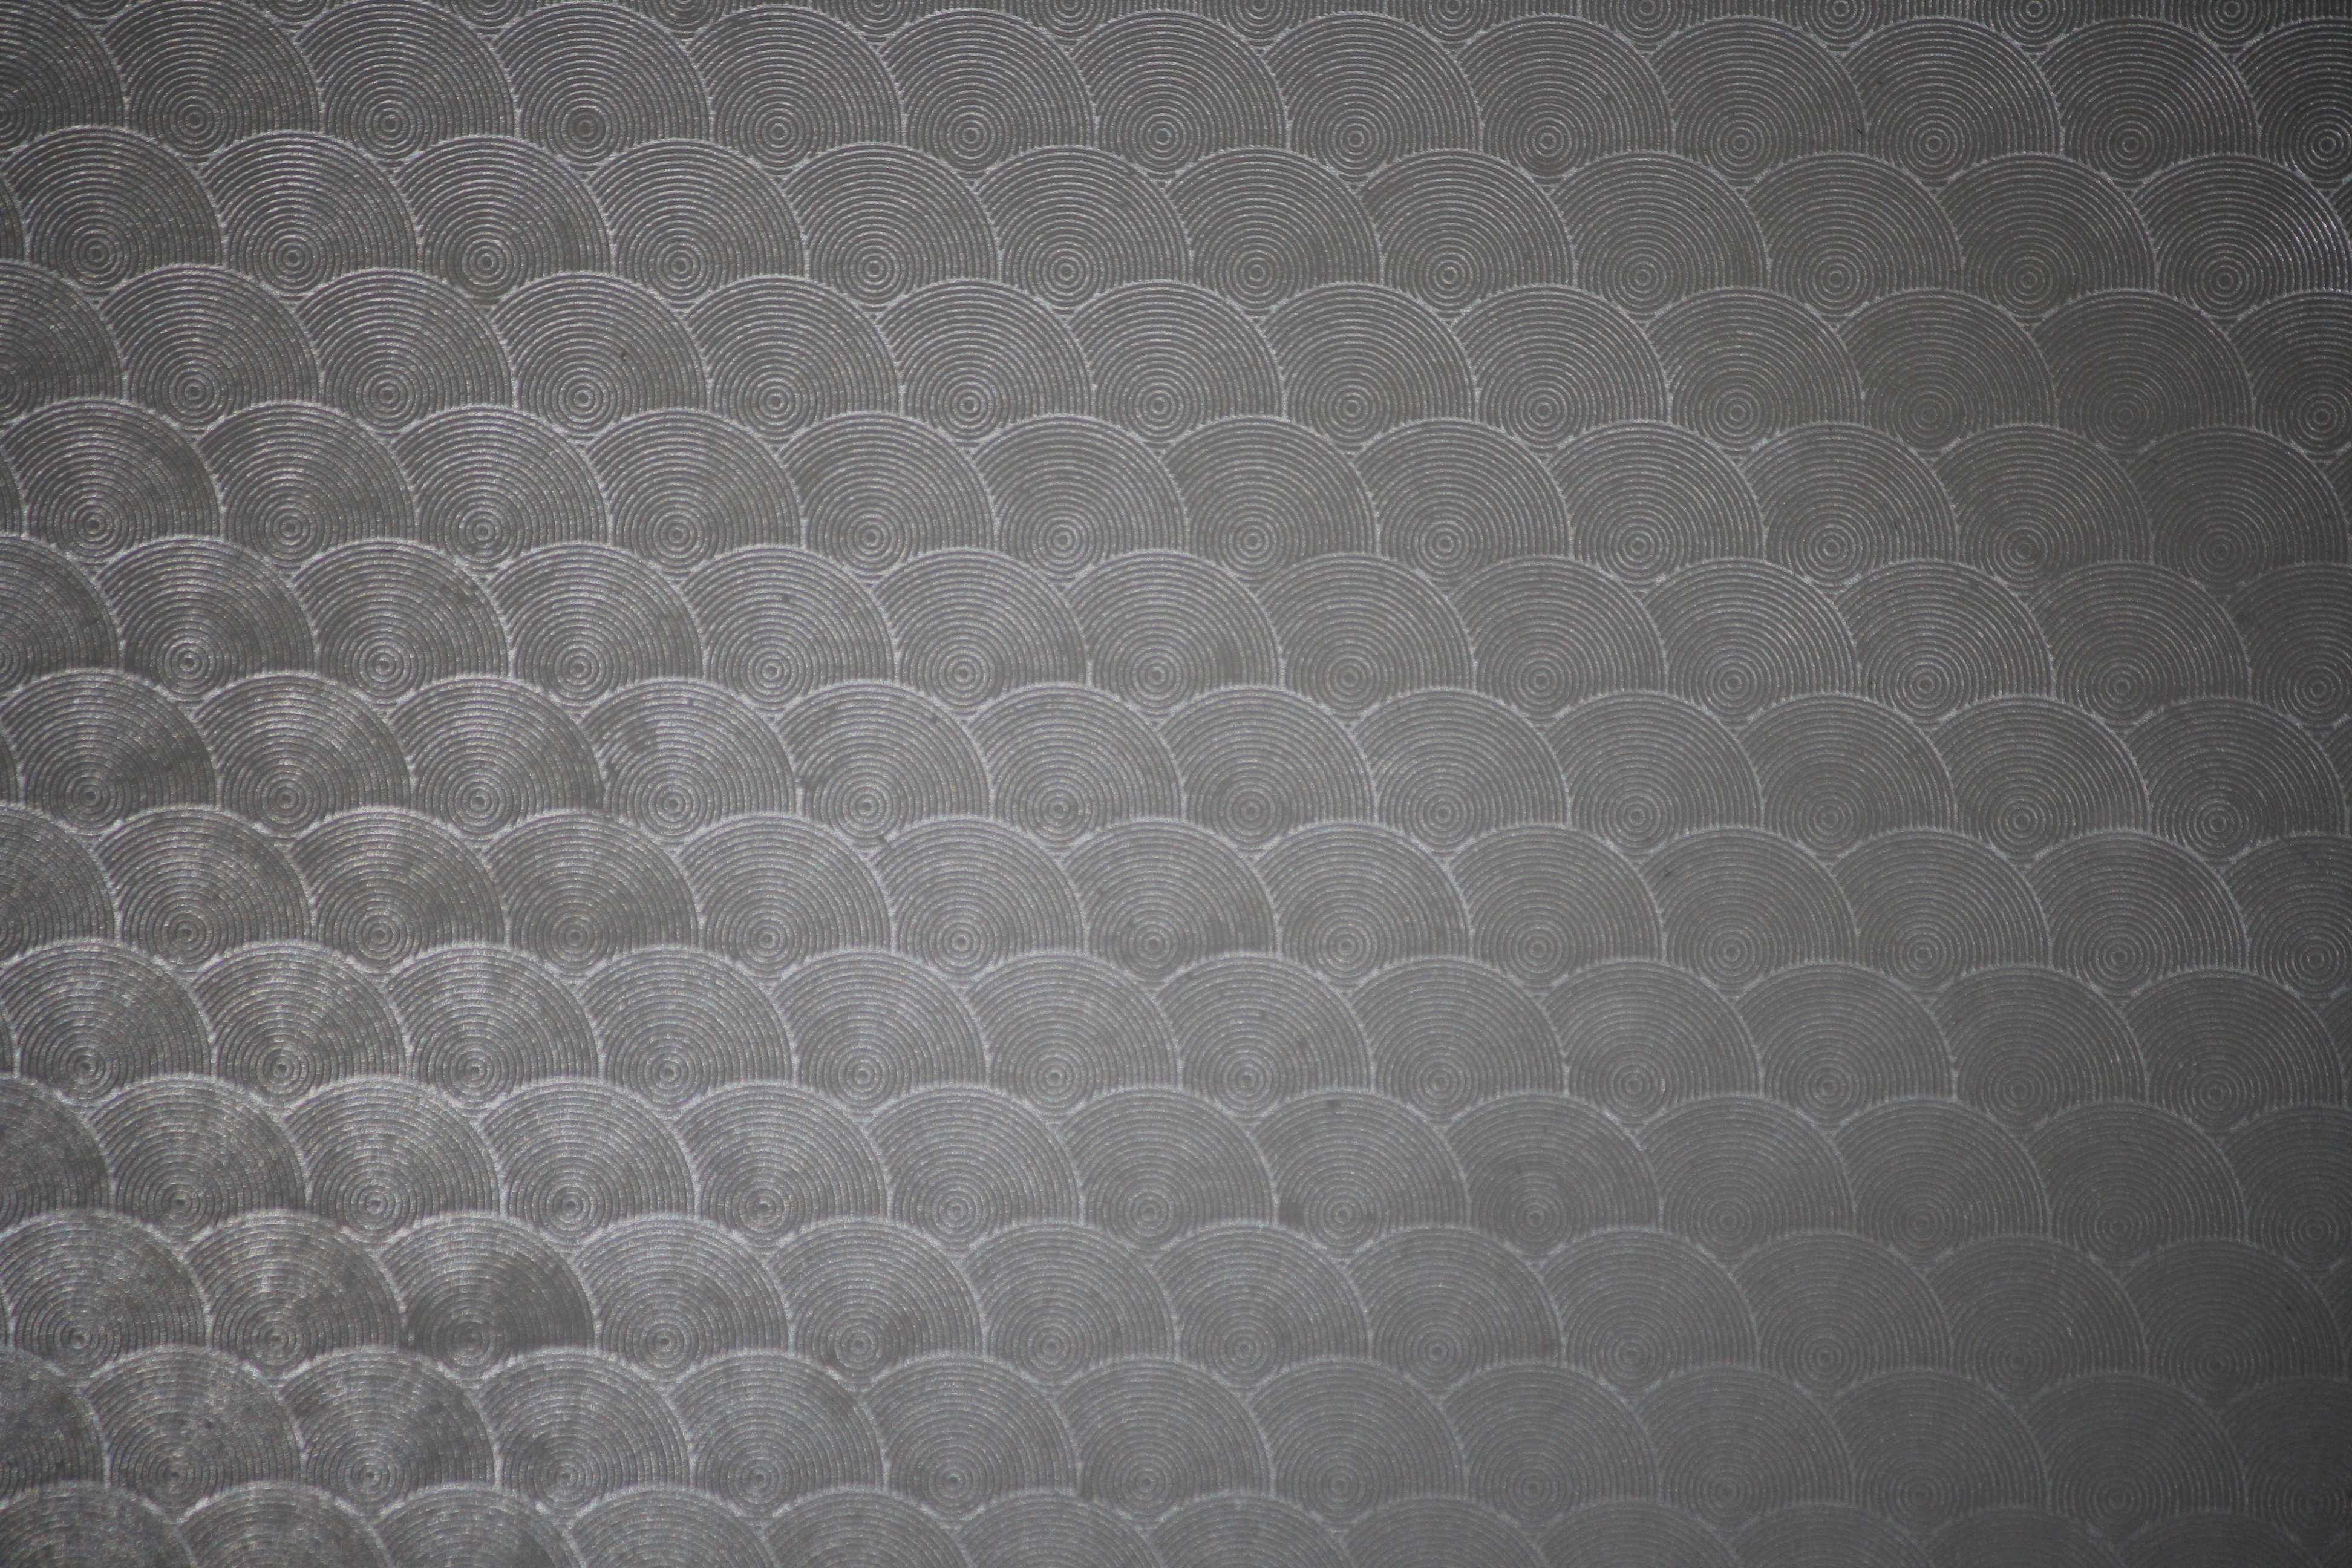 Charcoal Gray Circle Patterned Plastic Texture Picture